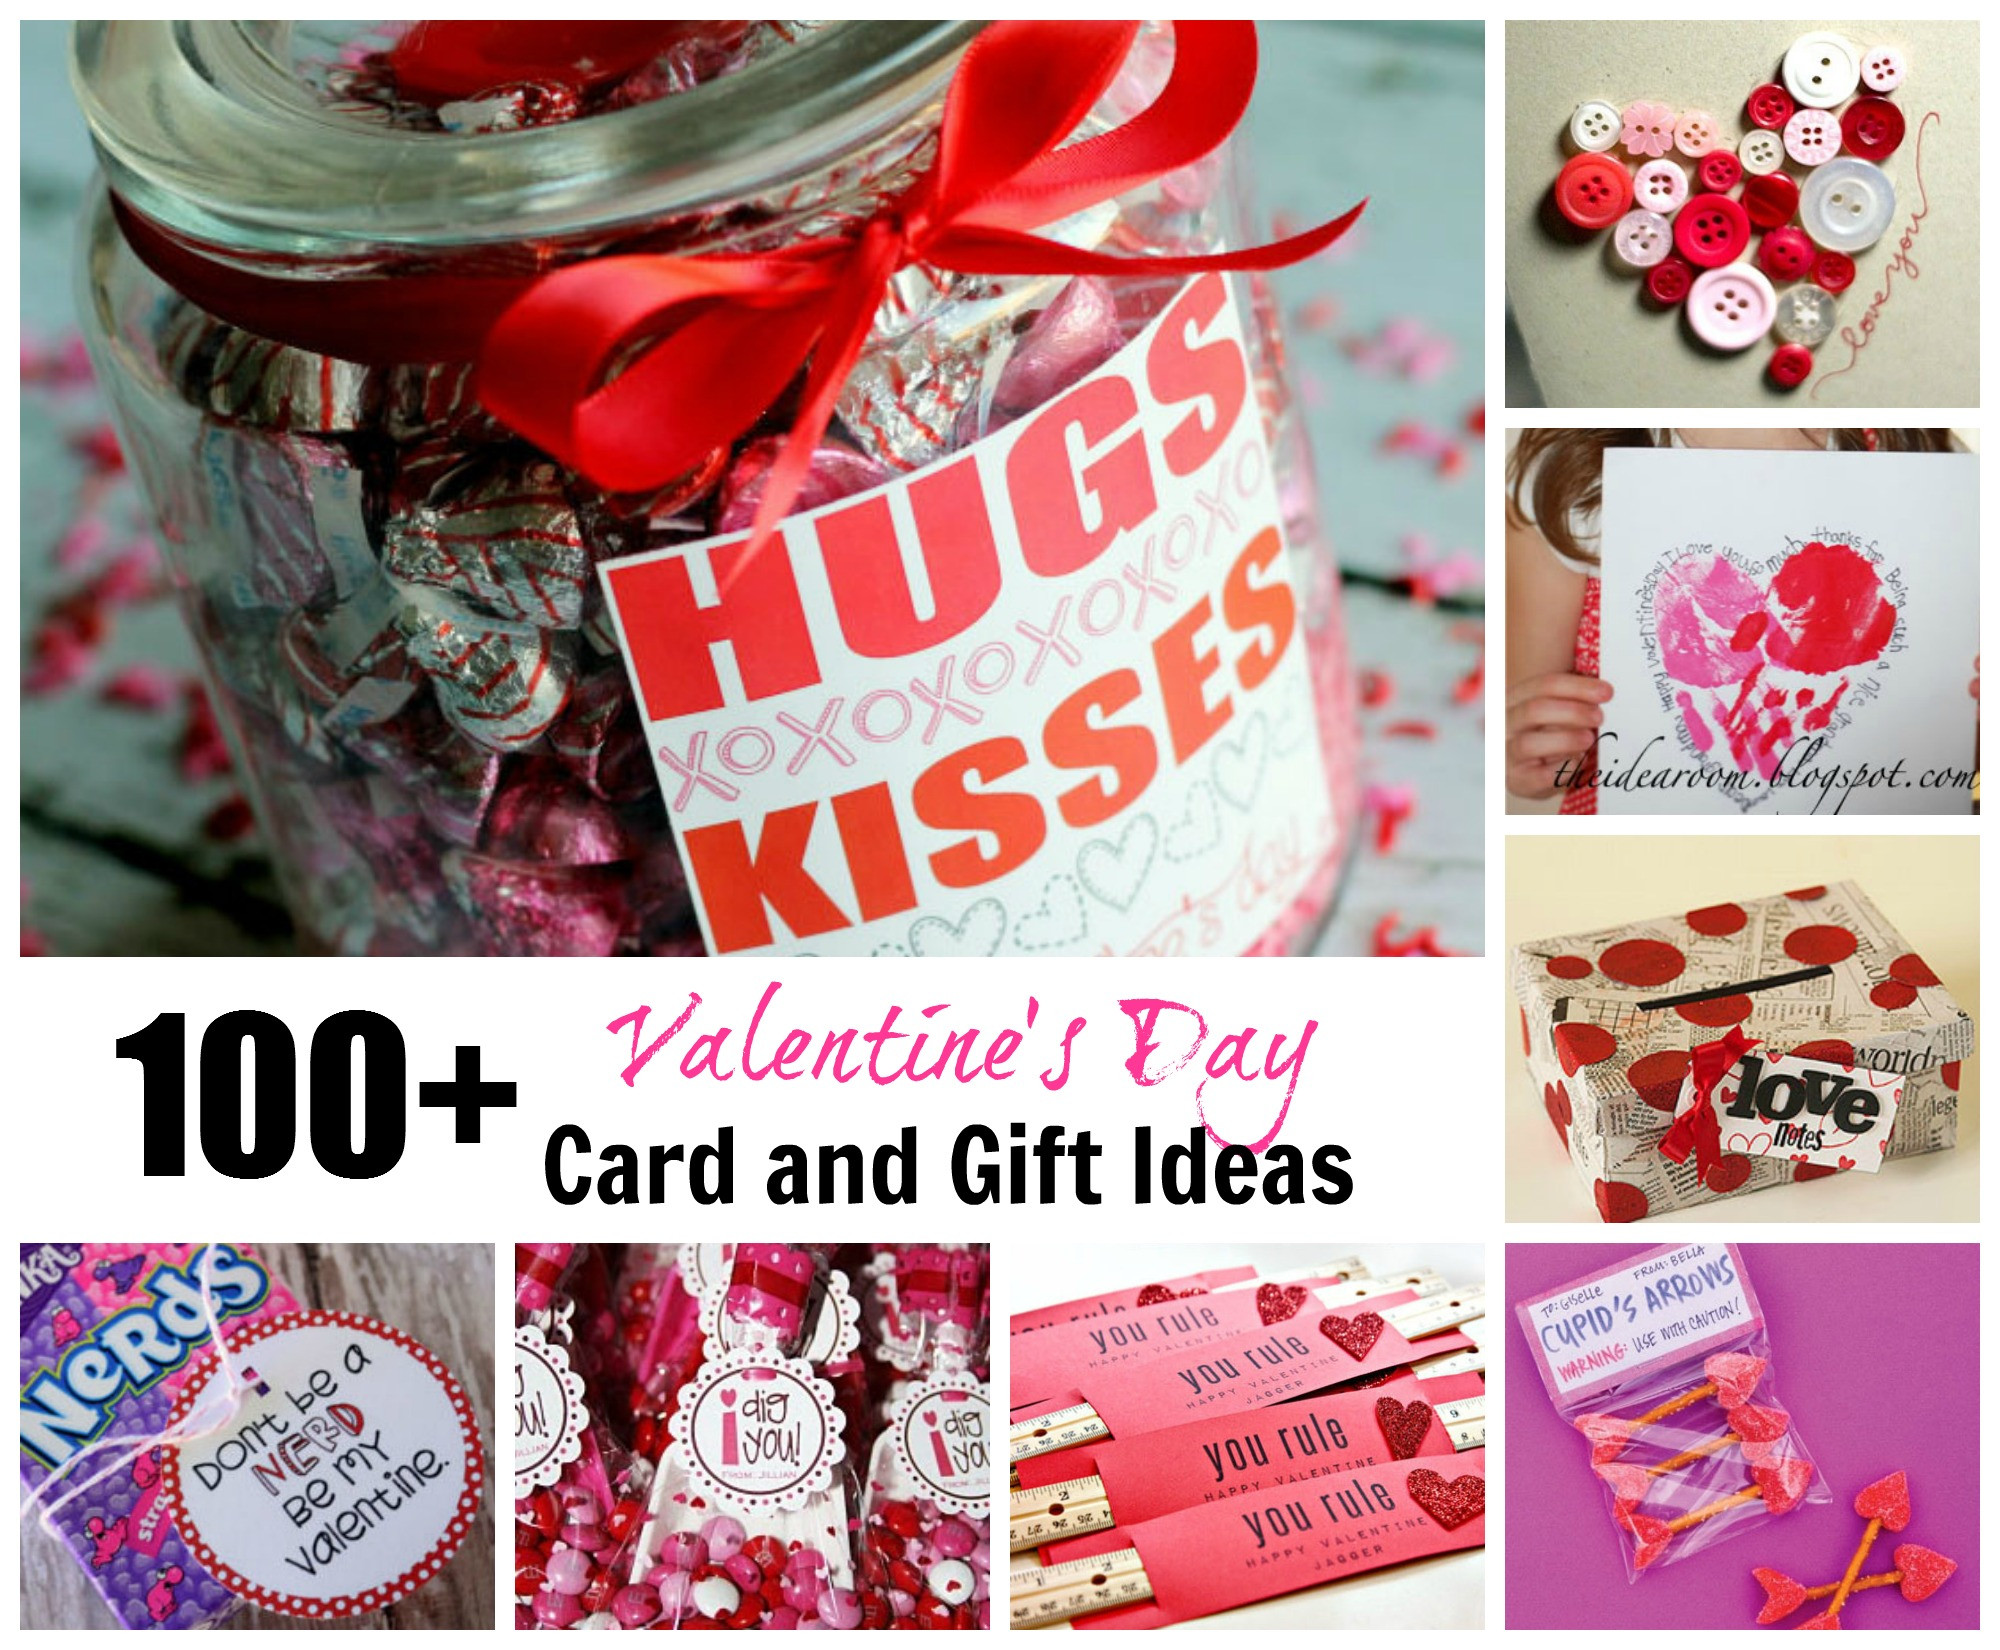 Valentine Day Homemade Gift Ideas  Valentine's Day Cards and Gifts